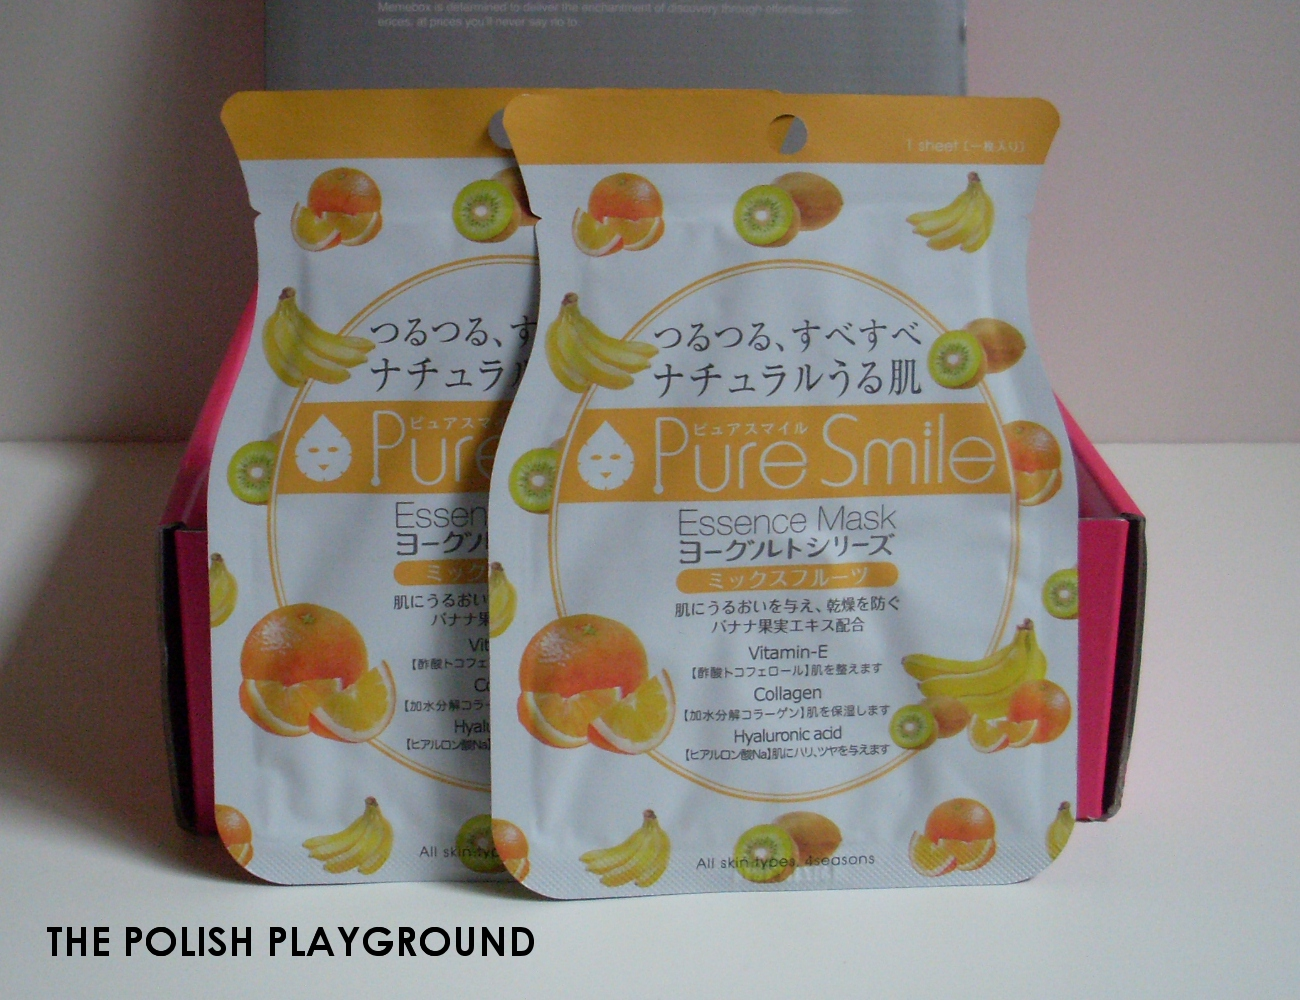 Memebox Superbox #54 Yogurt Cosmetics Unboxing - Pure Smile Yogurt Mask Mixed Fruits